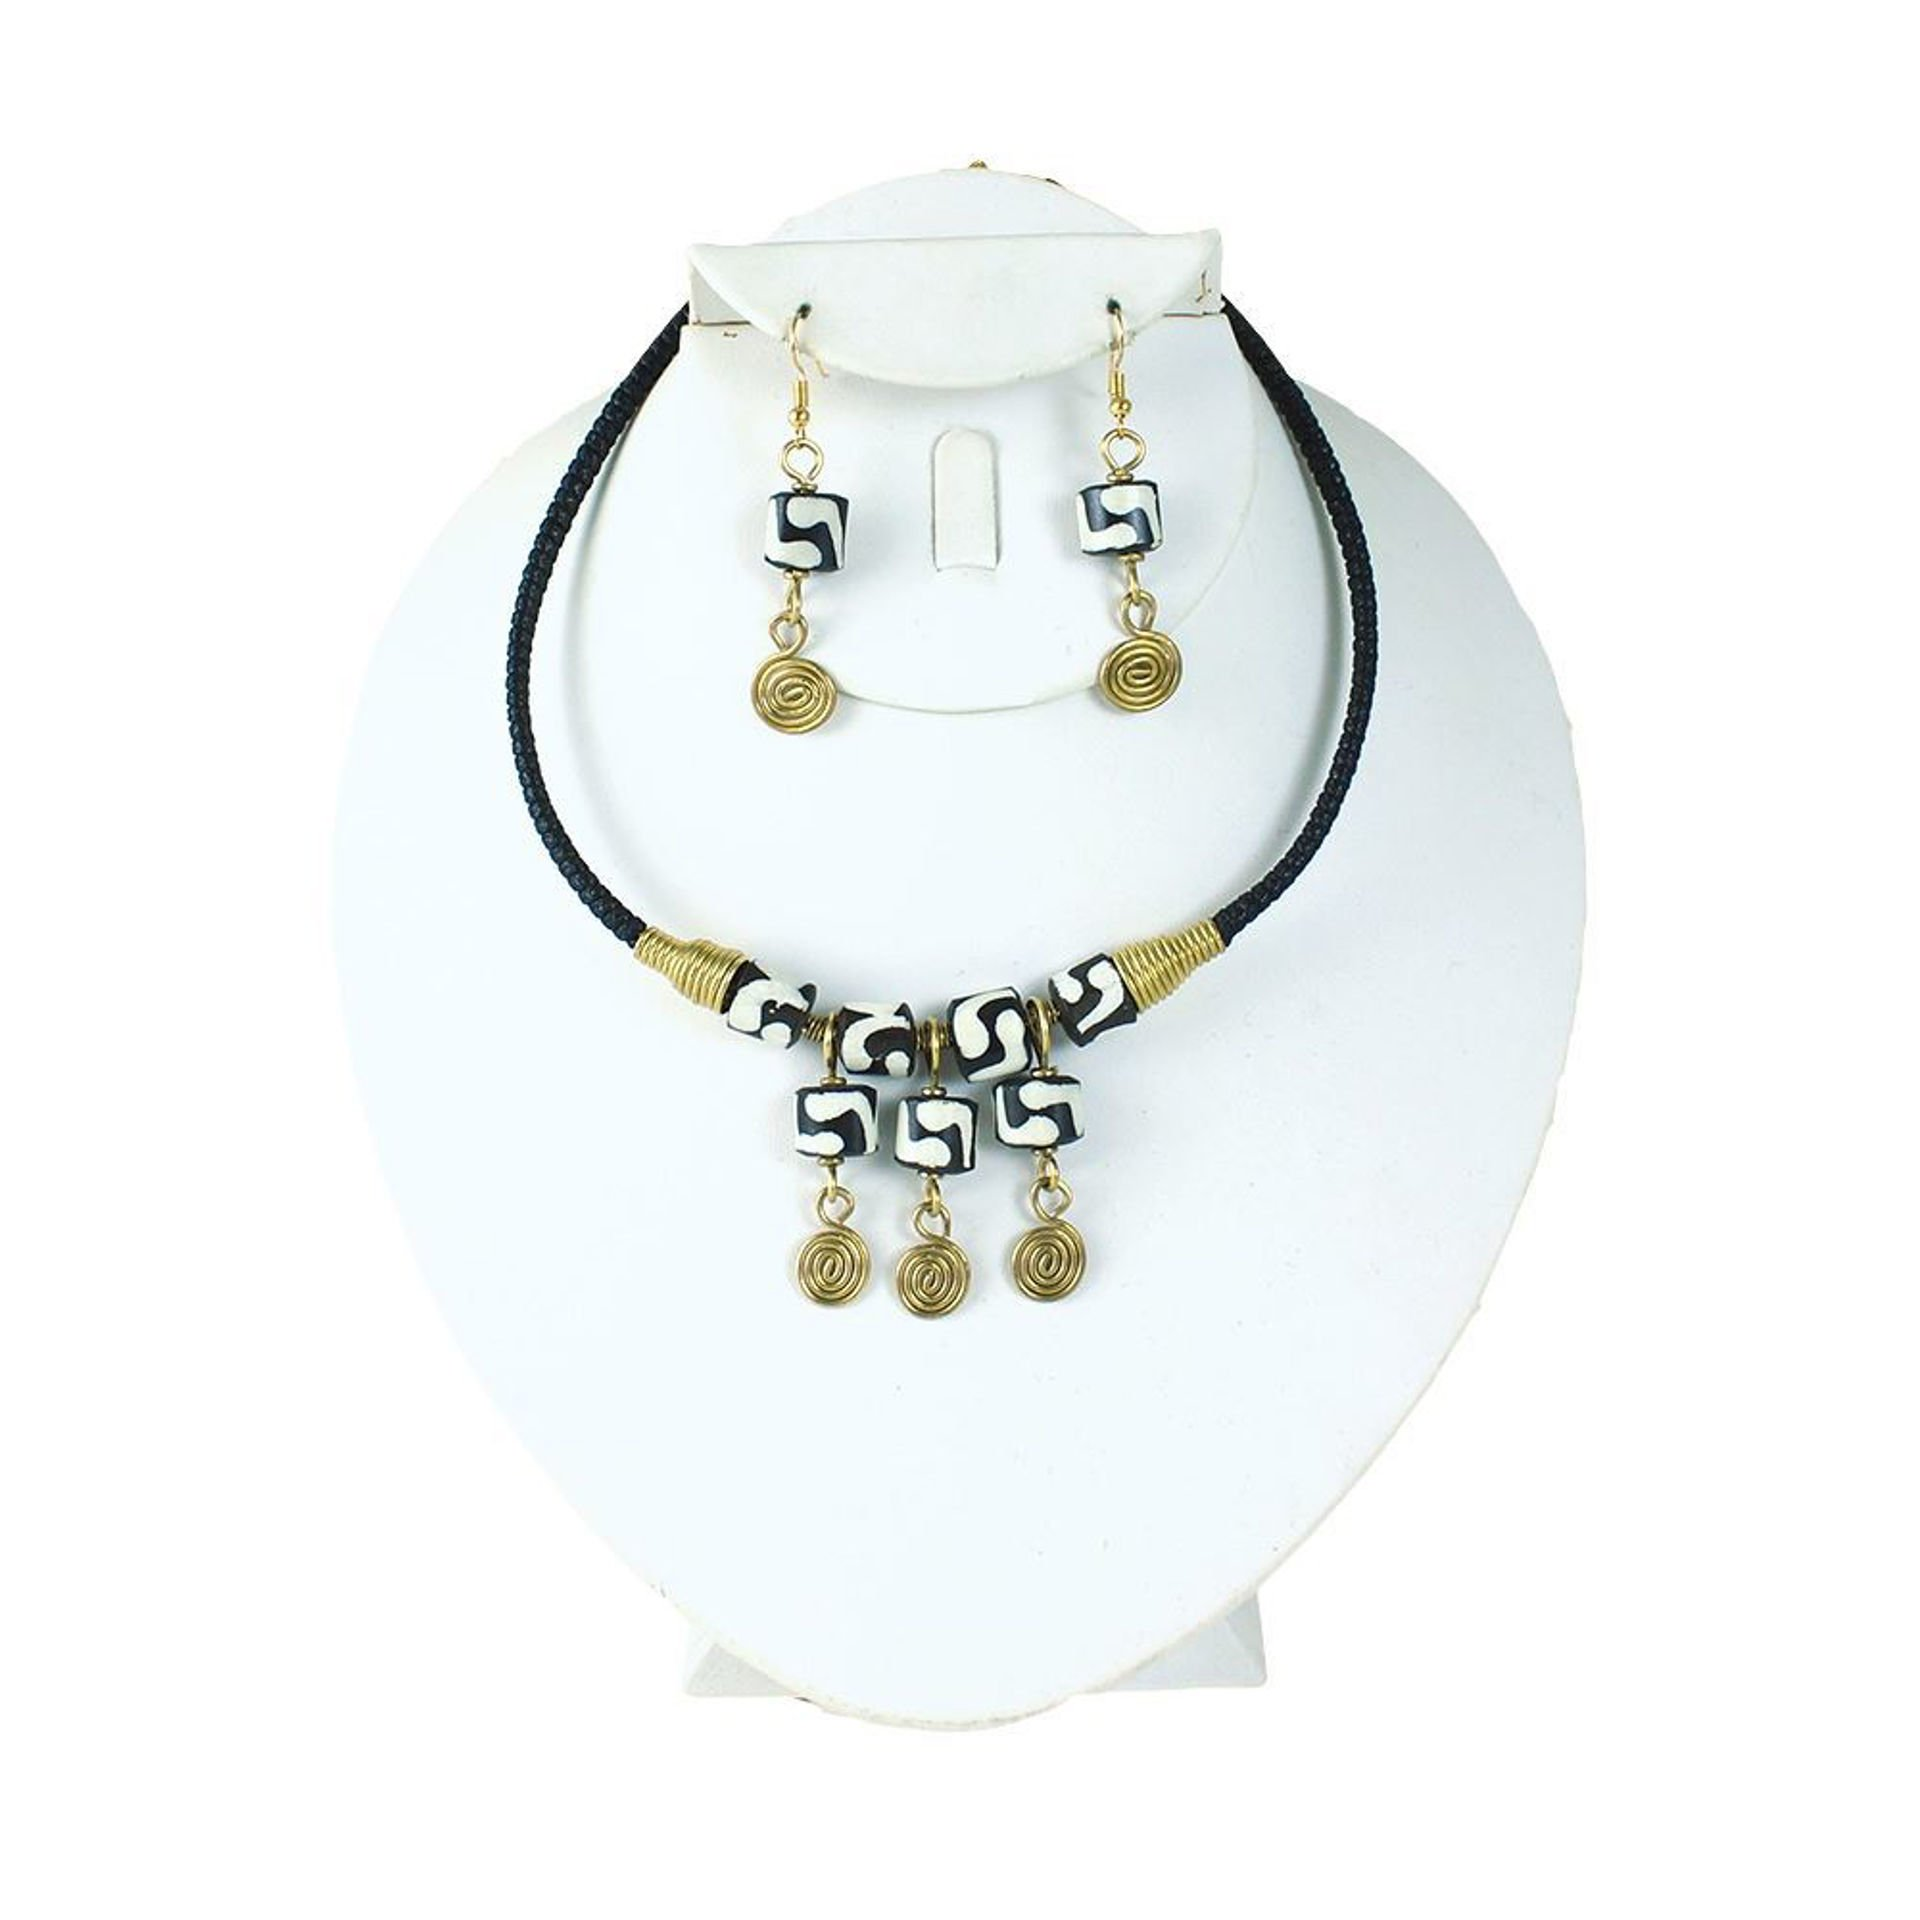 Picture of Leather-Bone-Brass Choker & Earrings Set